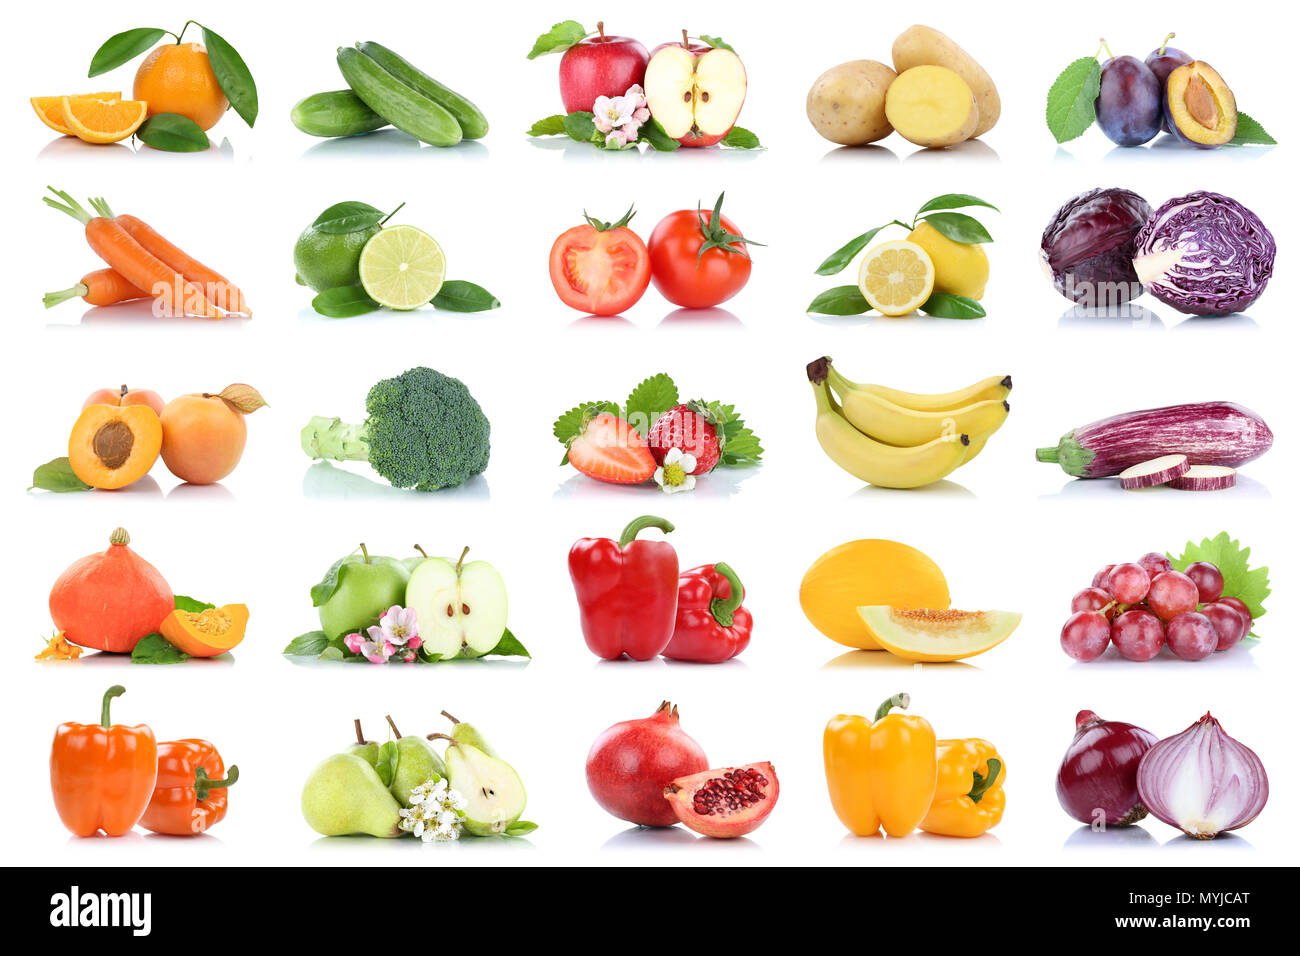 Fruit many fruits and vegetables collection isolated apple oranges onion tomatoes colors on a white background - Stock Image